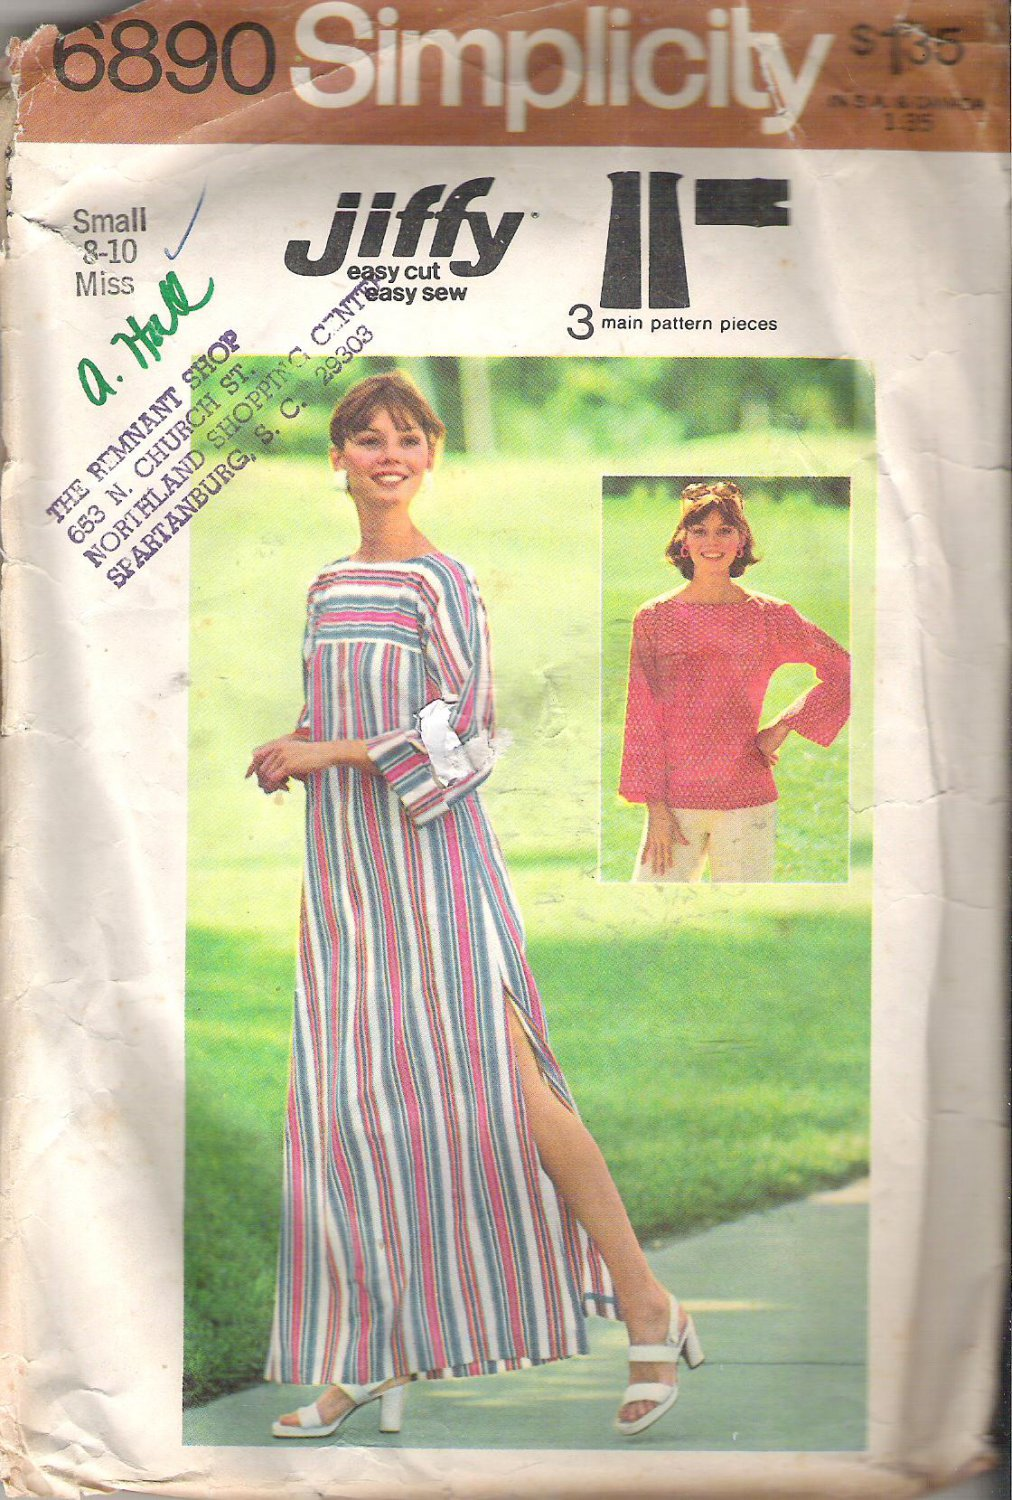 Simplicity 6890 (1975) Vintage Pattern Pullover Caftan or Top  Small Size 8-10  Cut